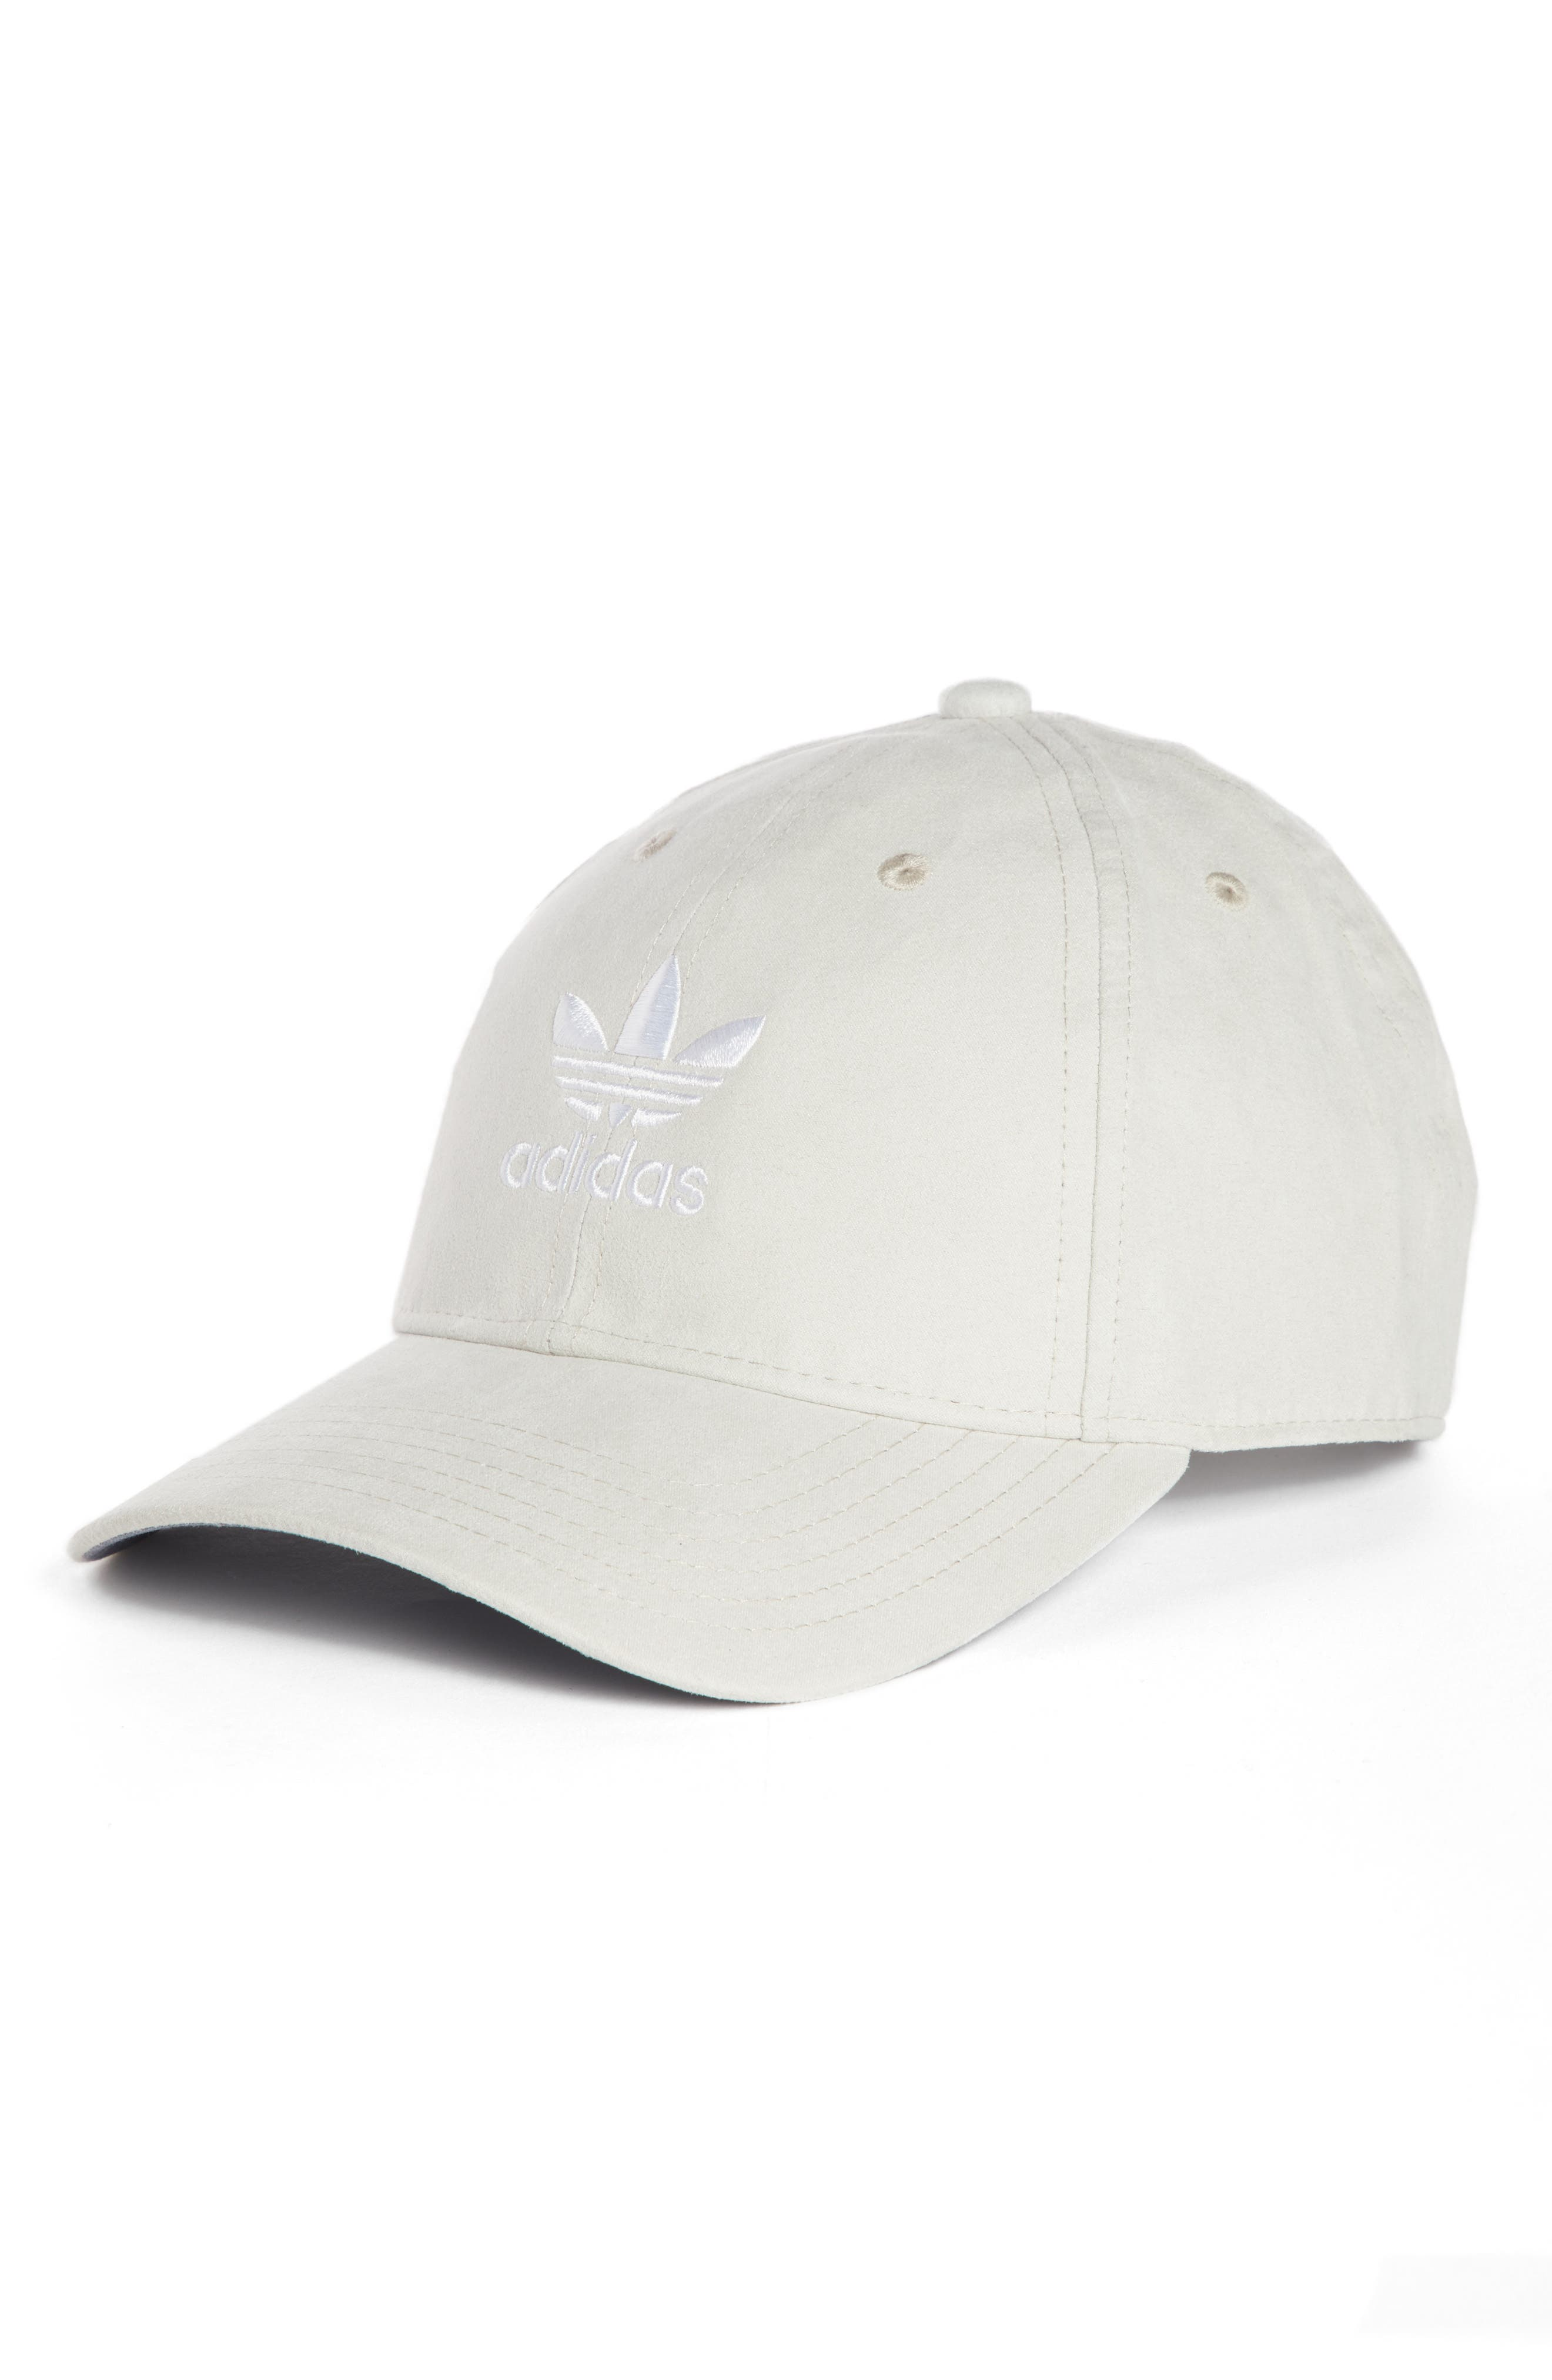 adidas Originals Relaxed Strap-Back Cap